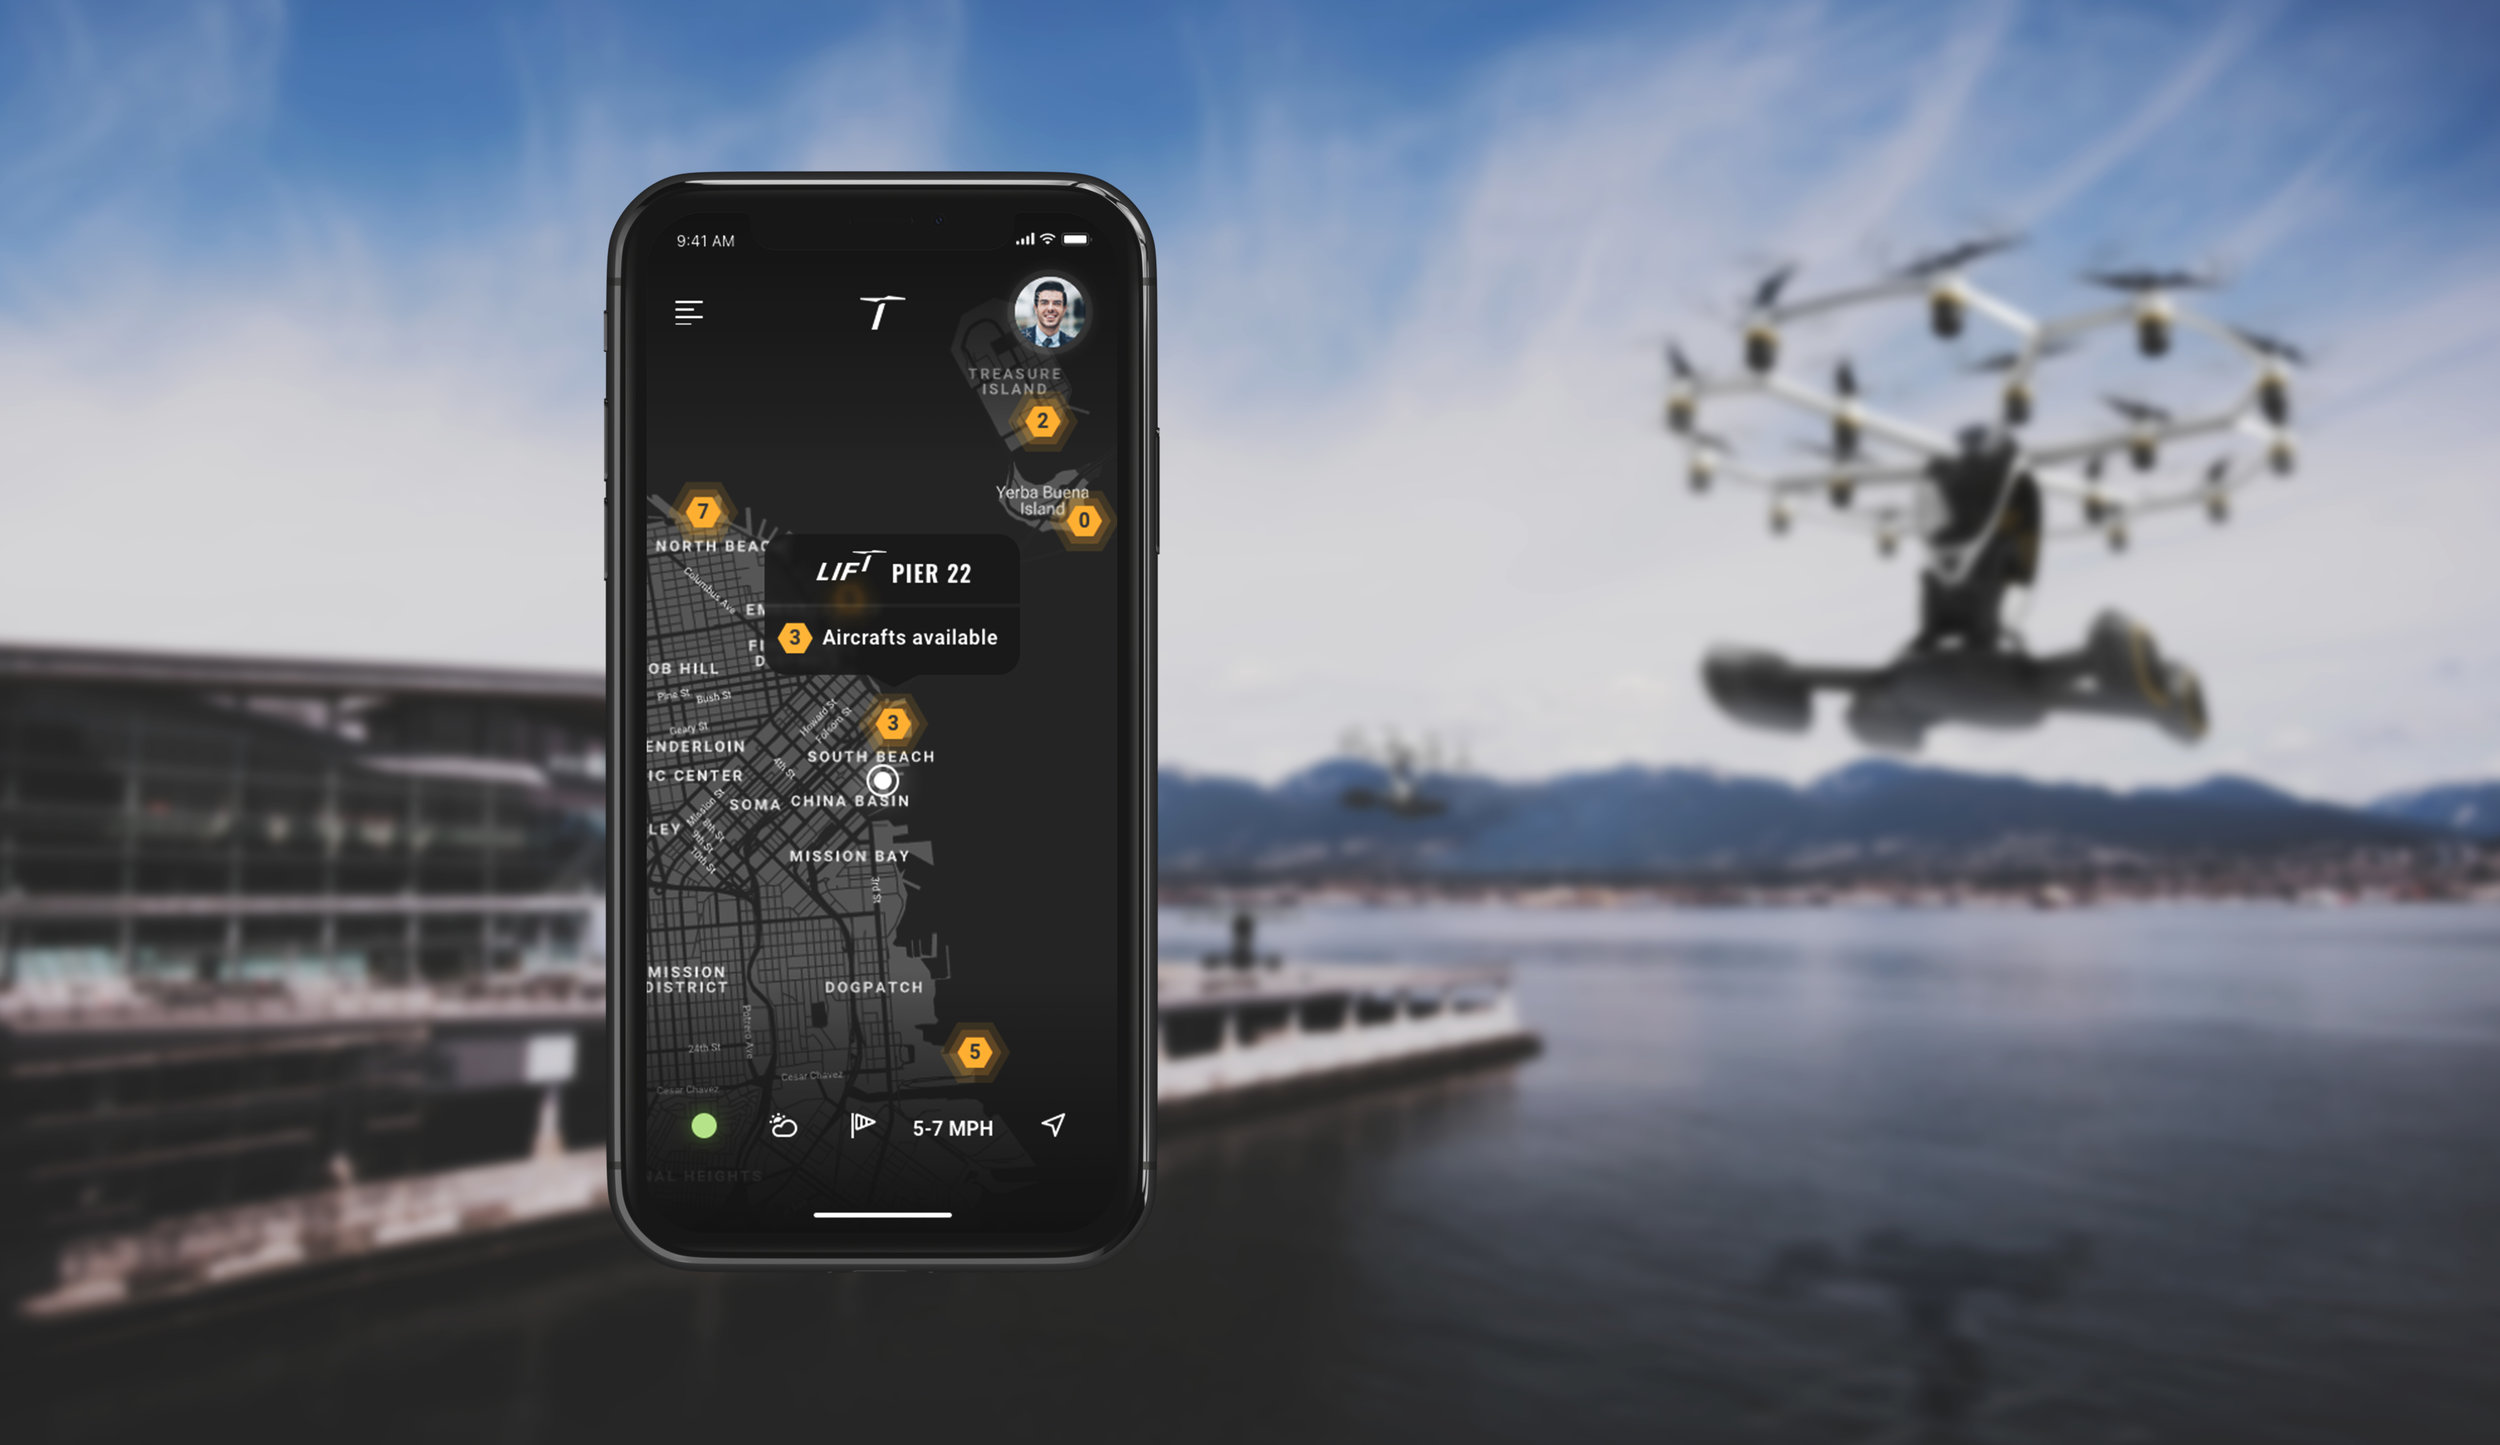 Lift Application UI with Hexa drone in the backround, both designed by maform